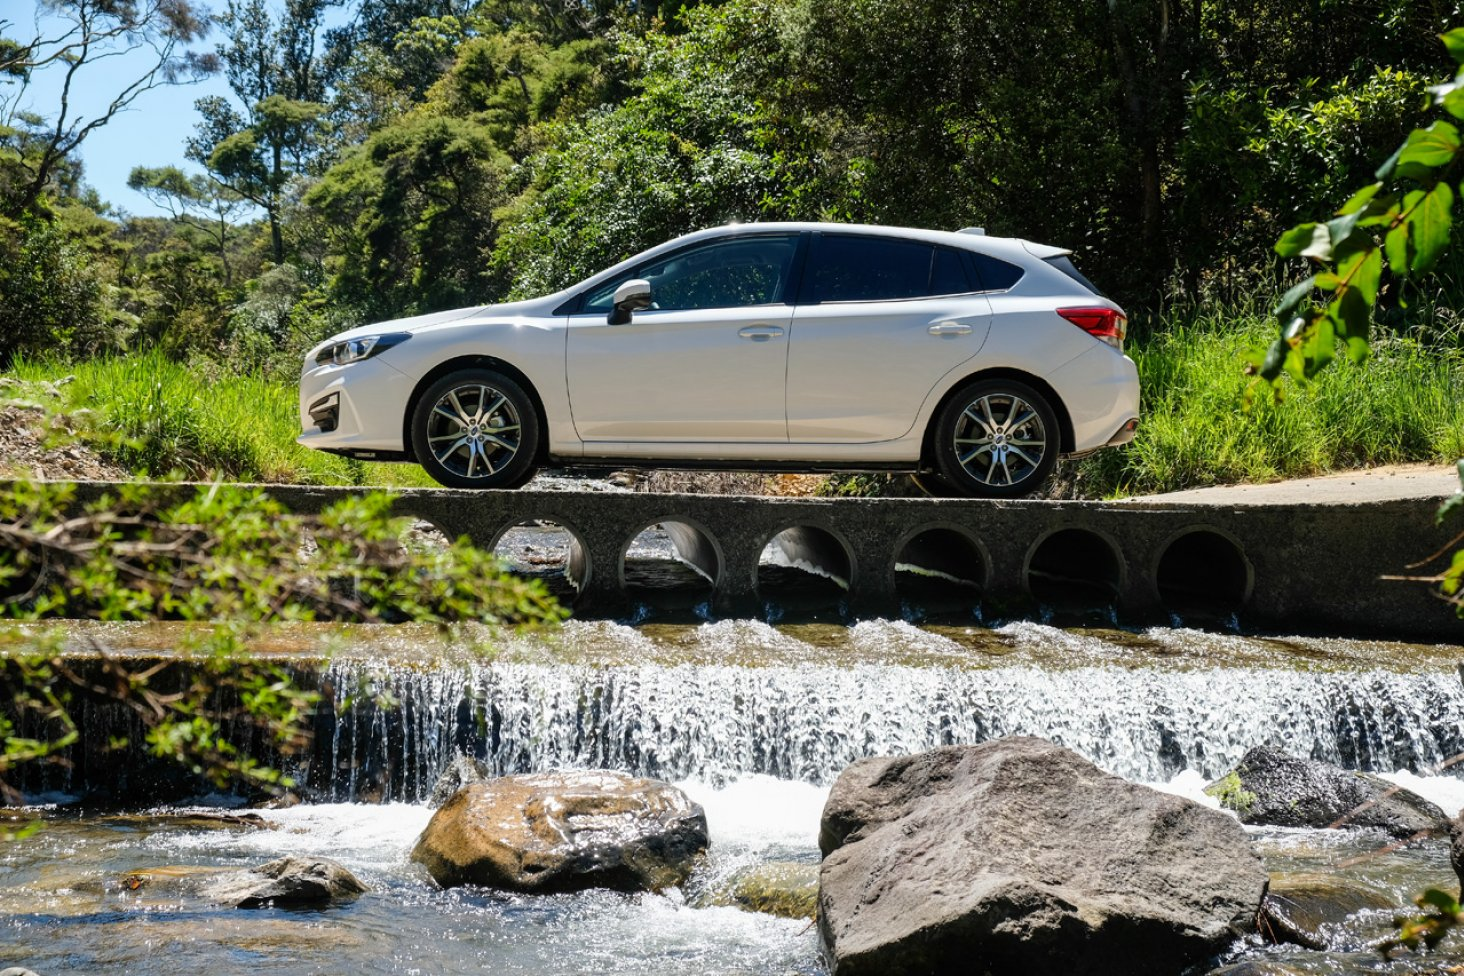 The new Subaru Impreza 2.0 Sport will be priced at $29,990.